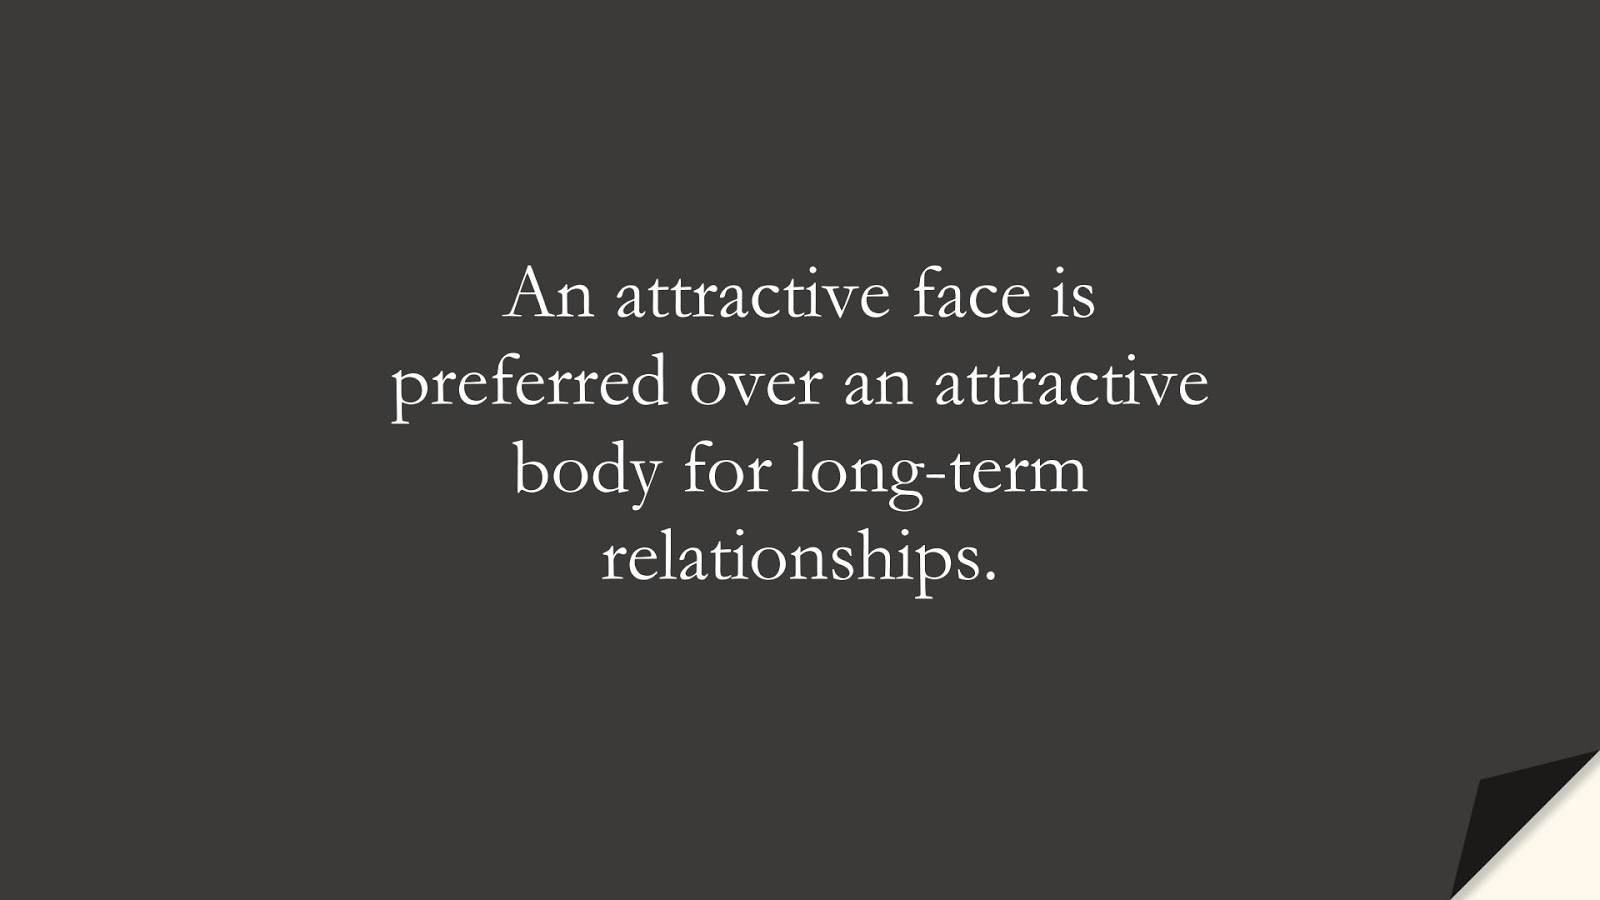 An attractive face is preferred over an attractive body for long-term relationships.FALSE